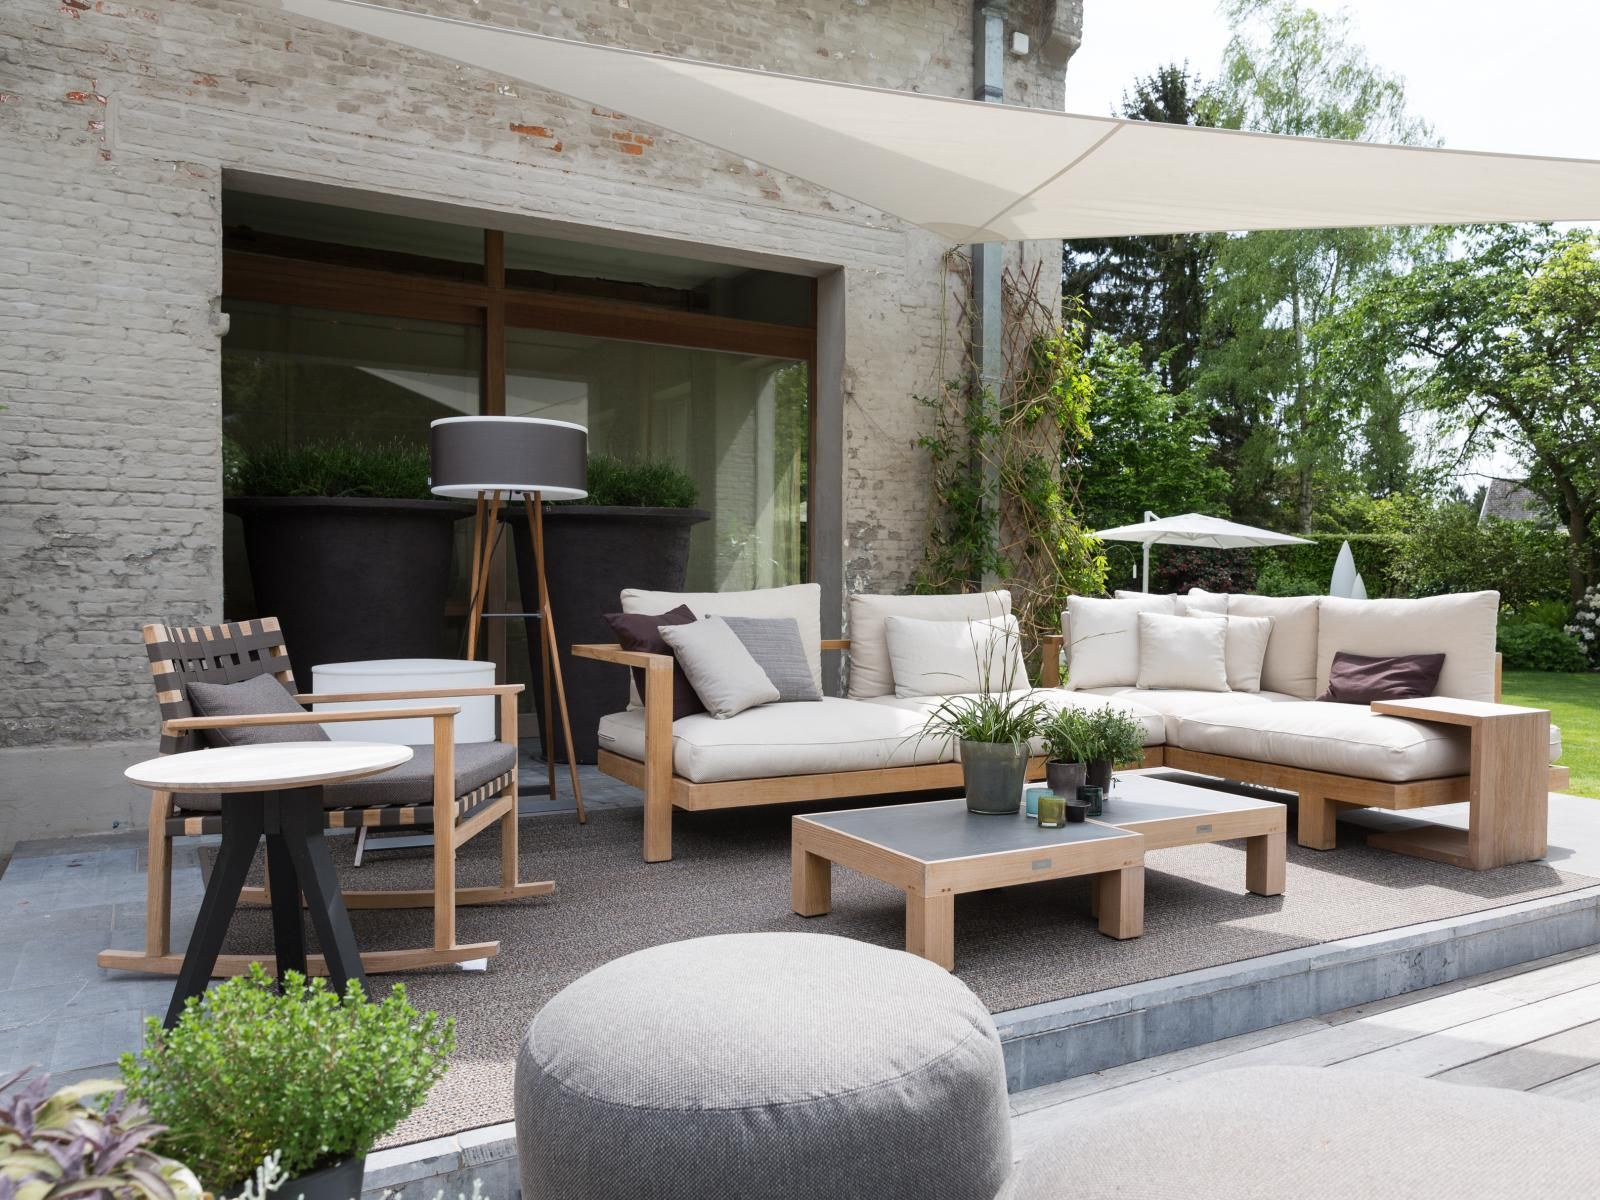 Tribu Pure sofa teak c-tafeltje | Garden ideas | Pinterest ...